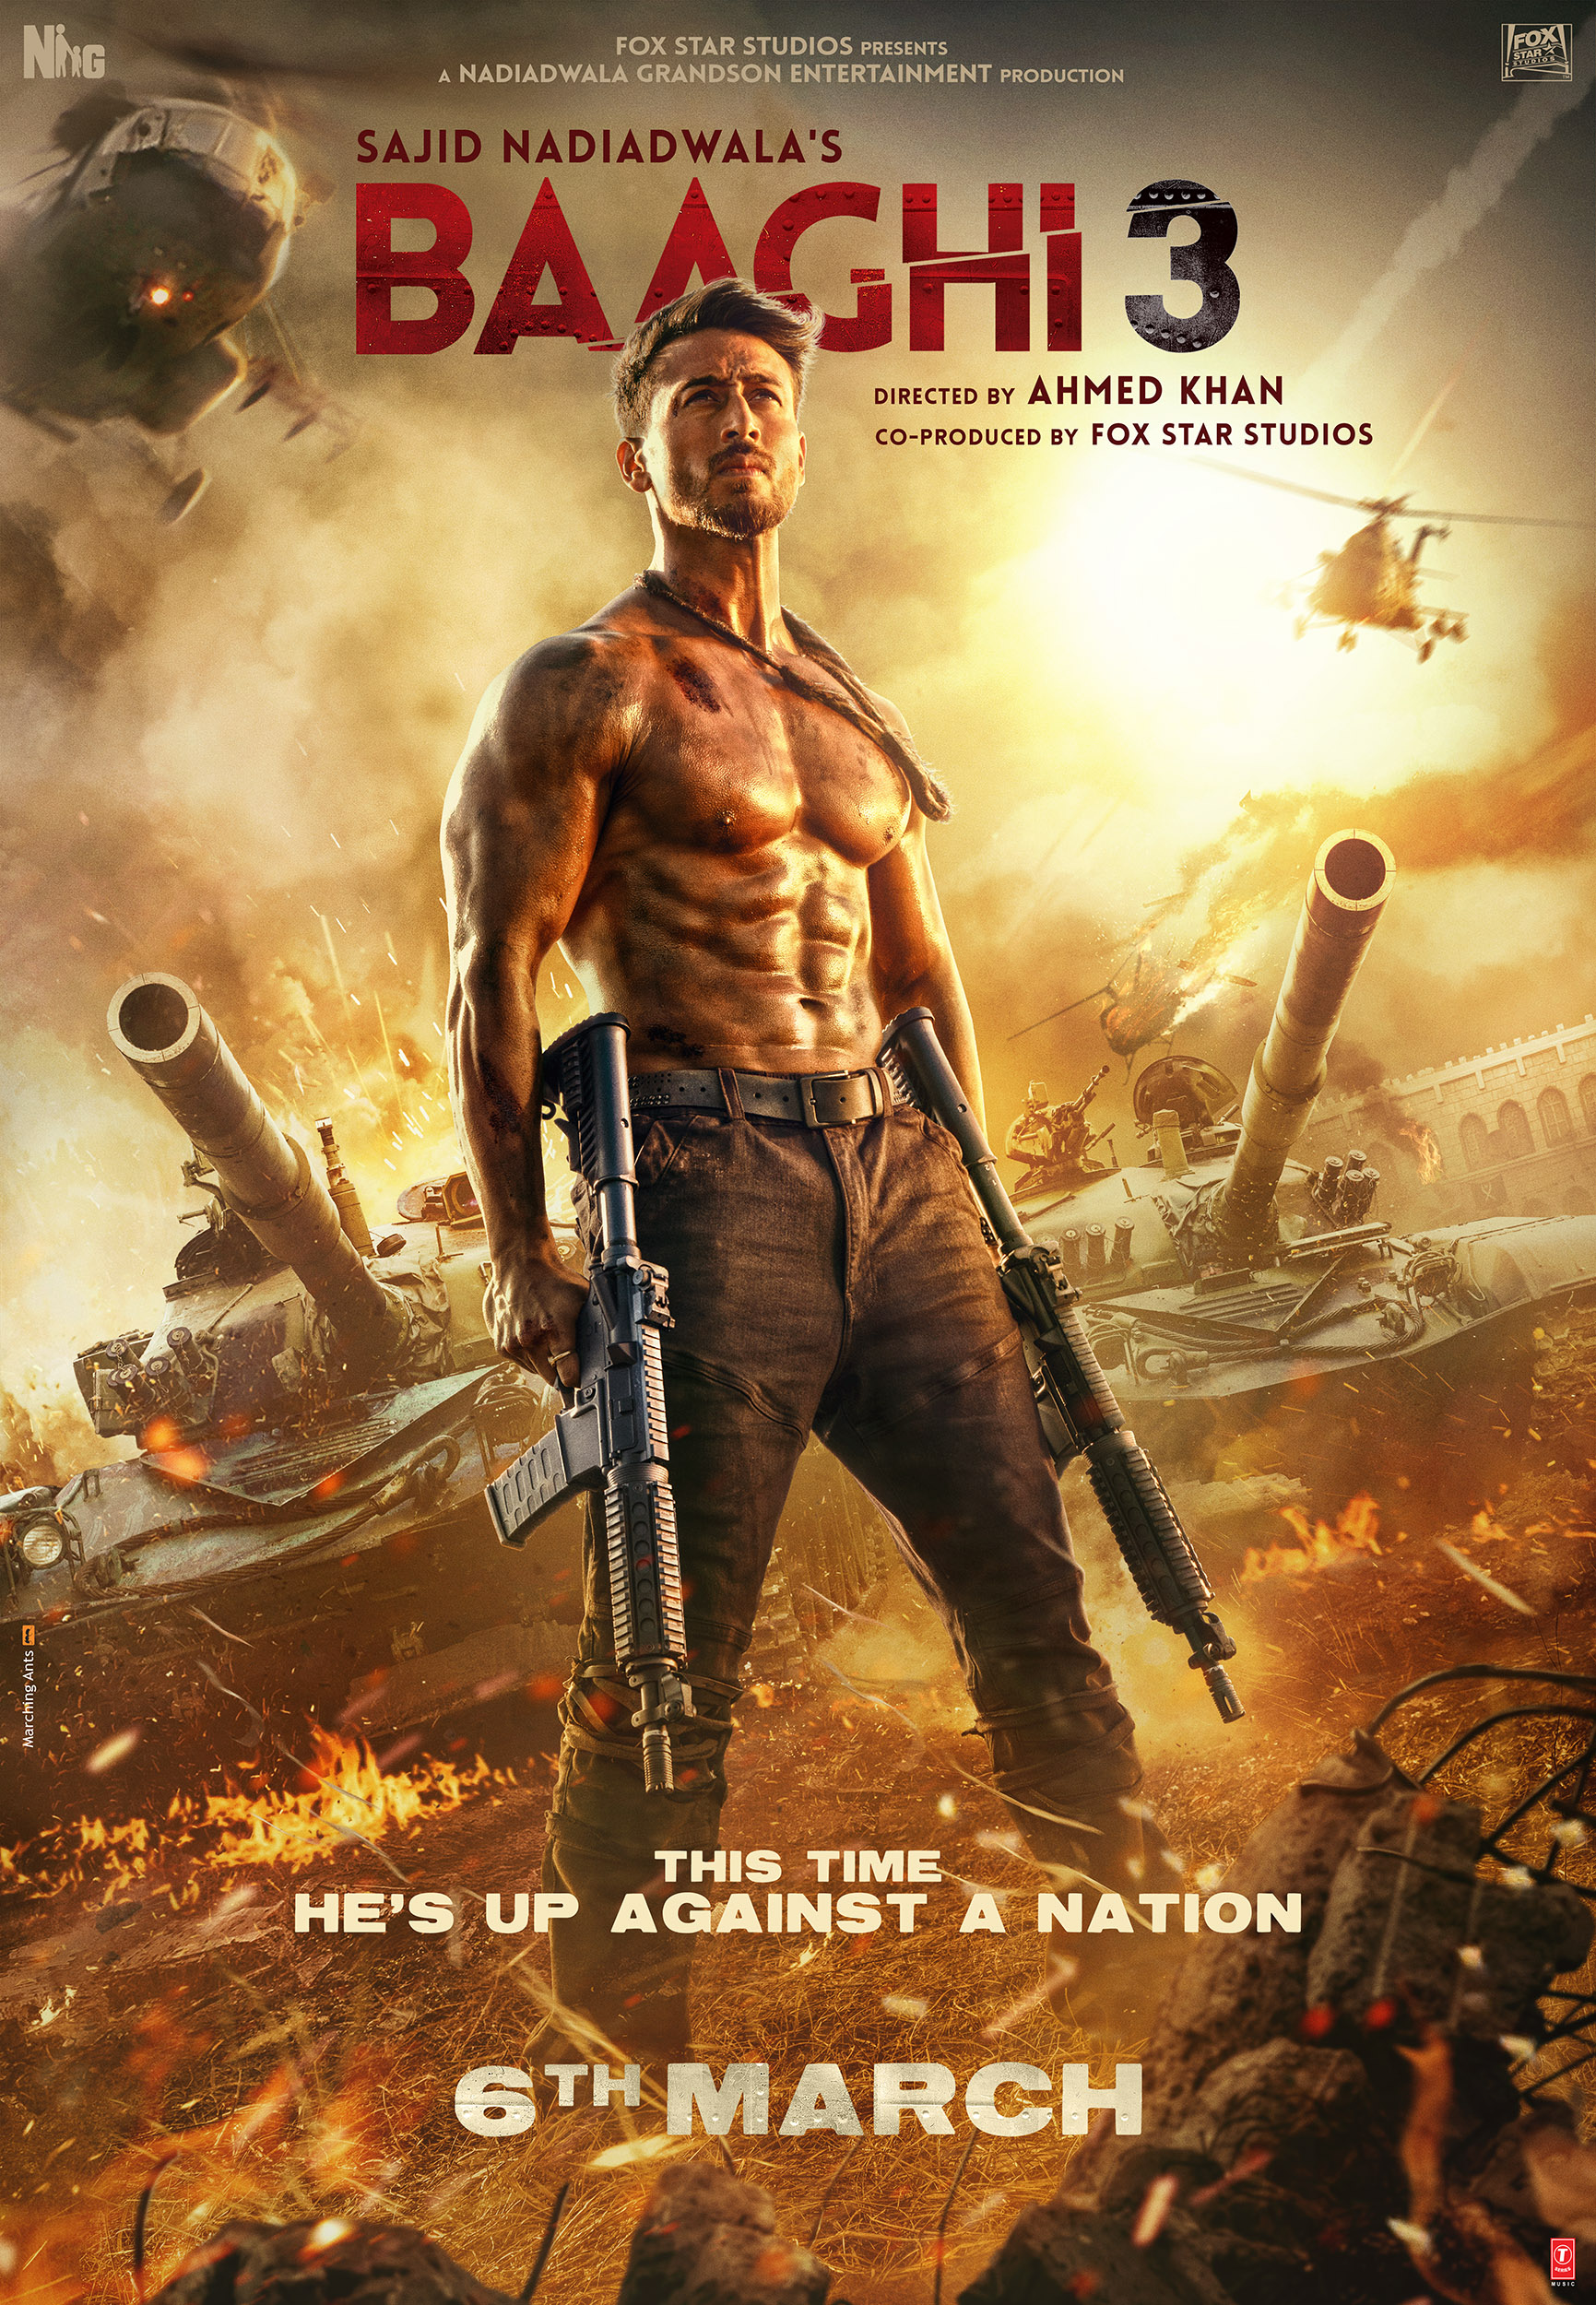 Baaghi 3 full movie download in hd 1080p